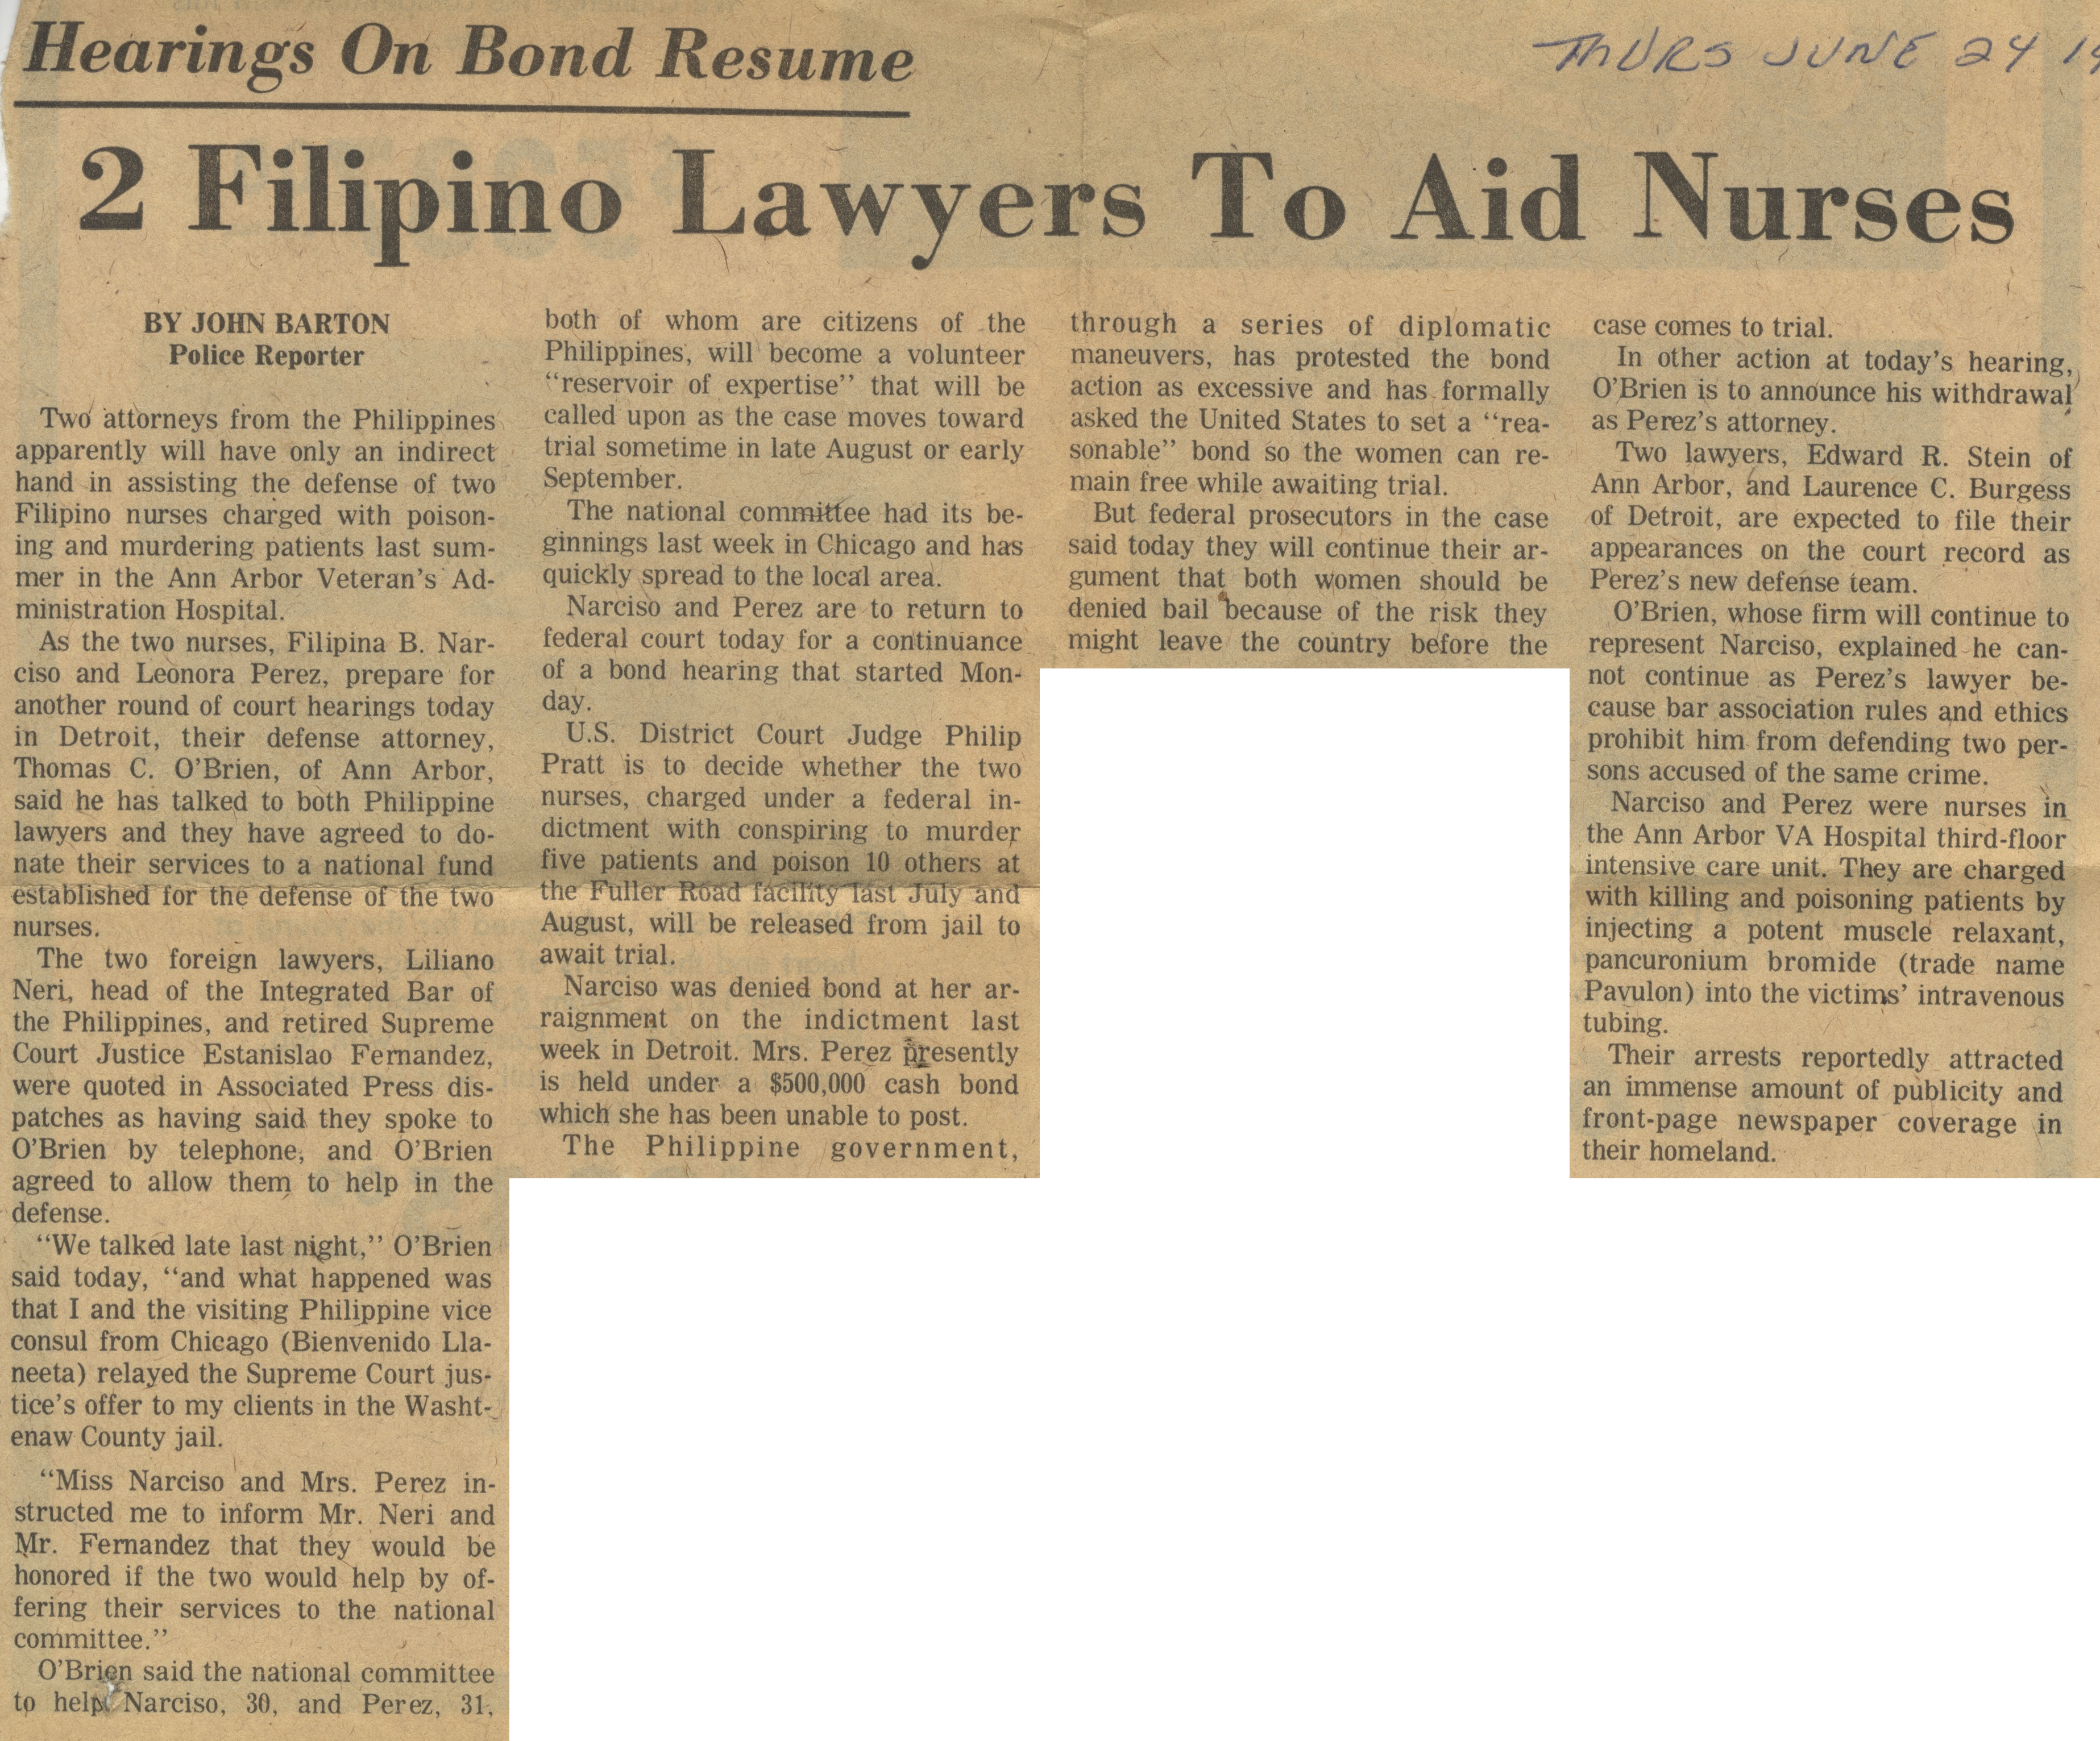 Hearings On Bond Resume: 2 Filipino Lawyers To Aid Nurses image